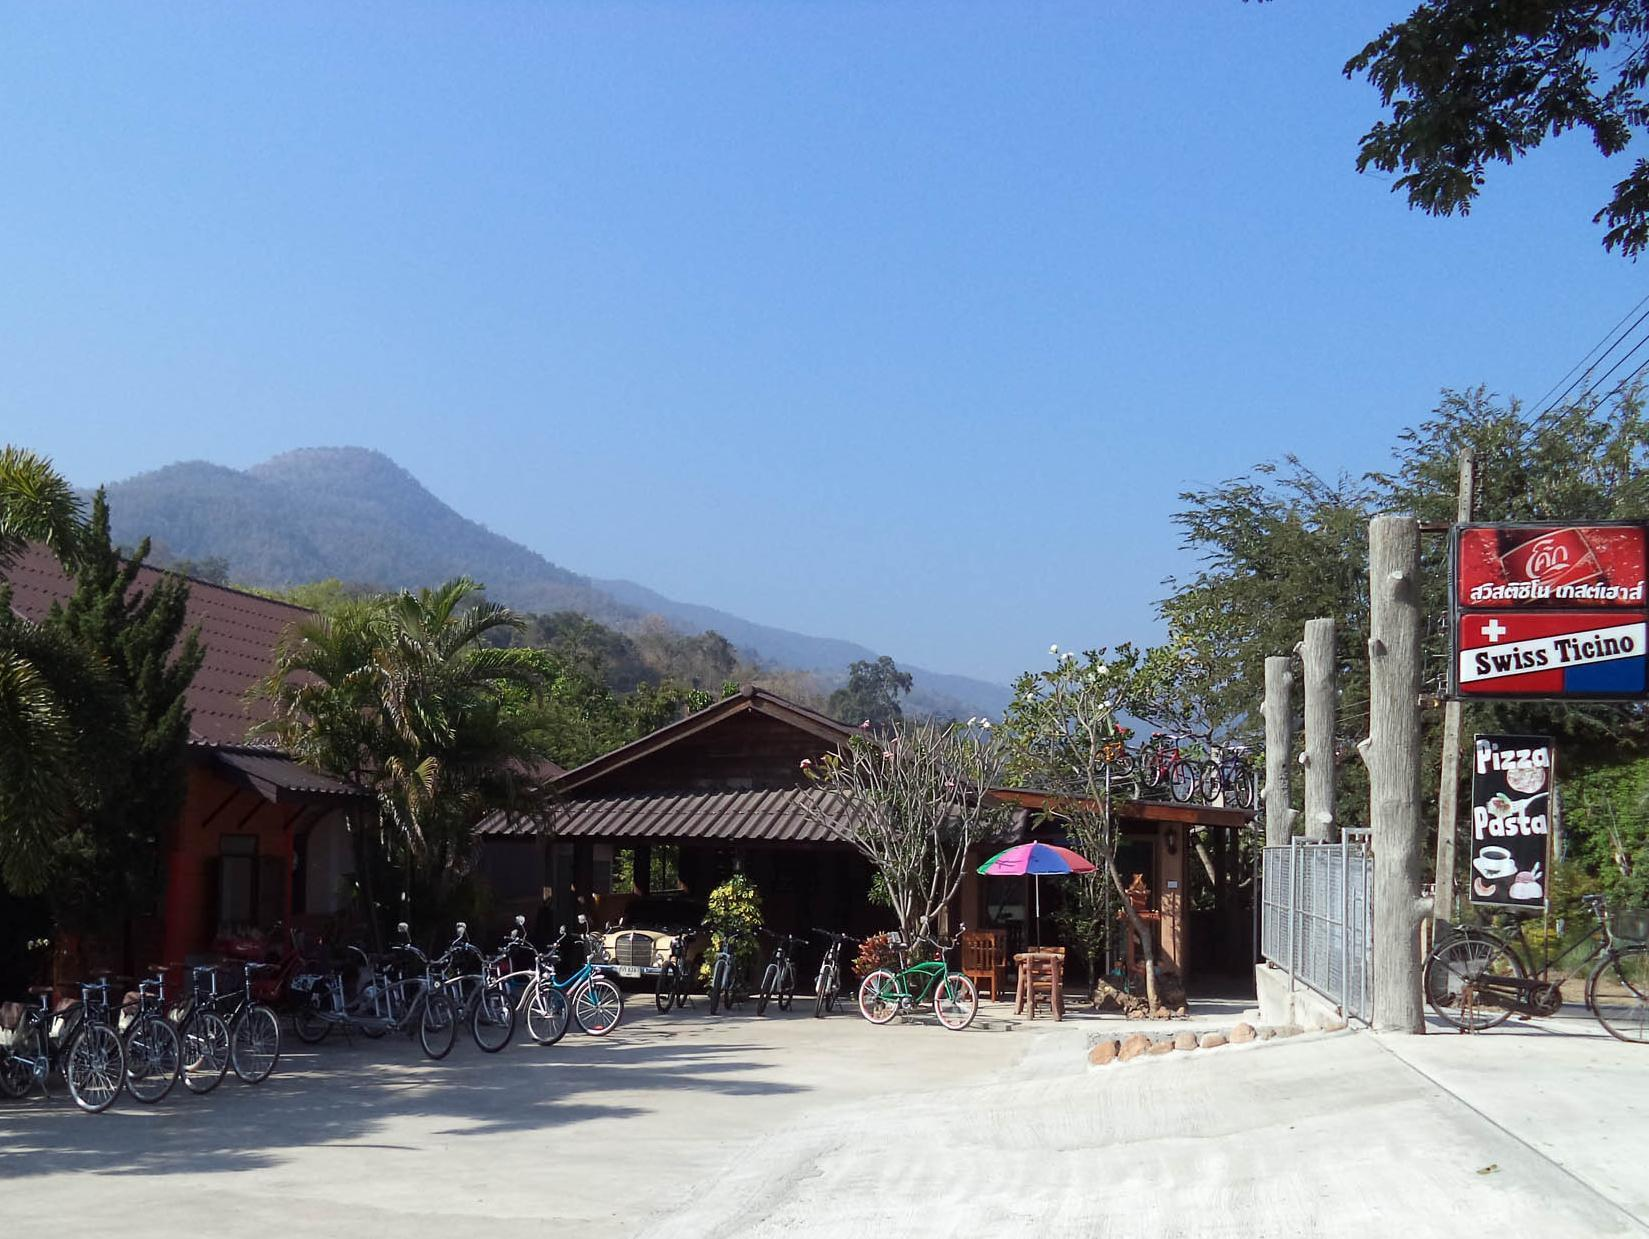 Swiss Ticino Guesthouse and Restaurant - Hotels and Accommodation in Thailand, Asia